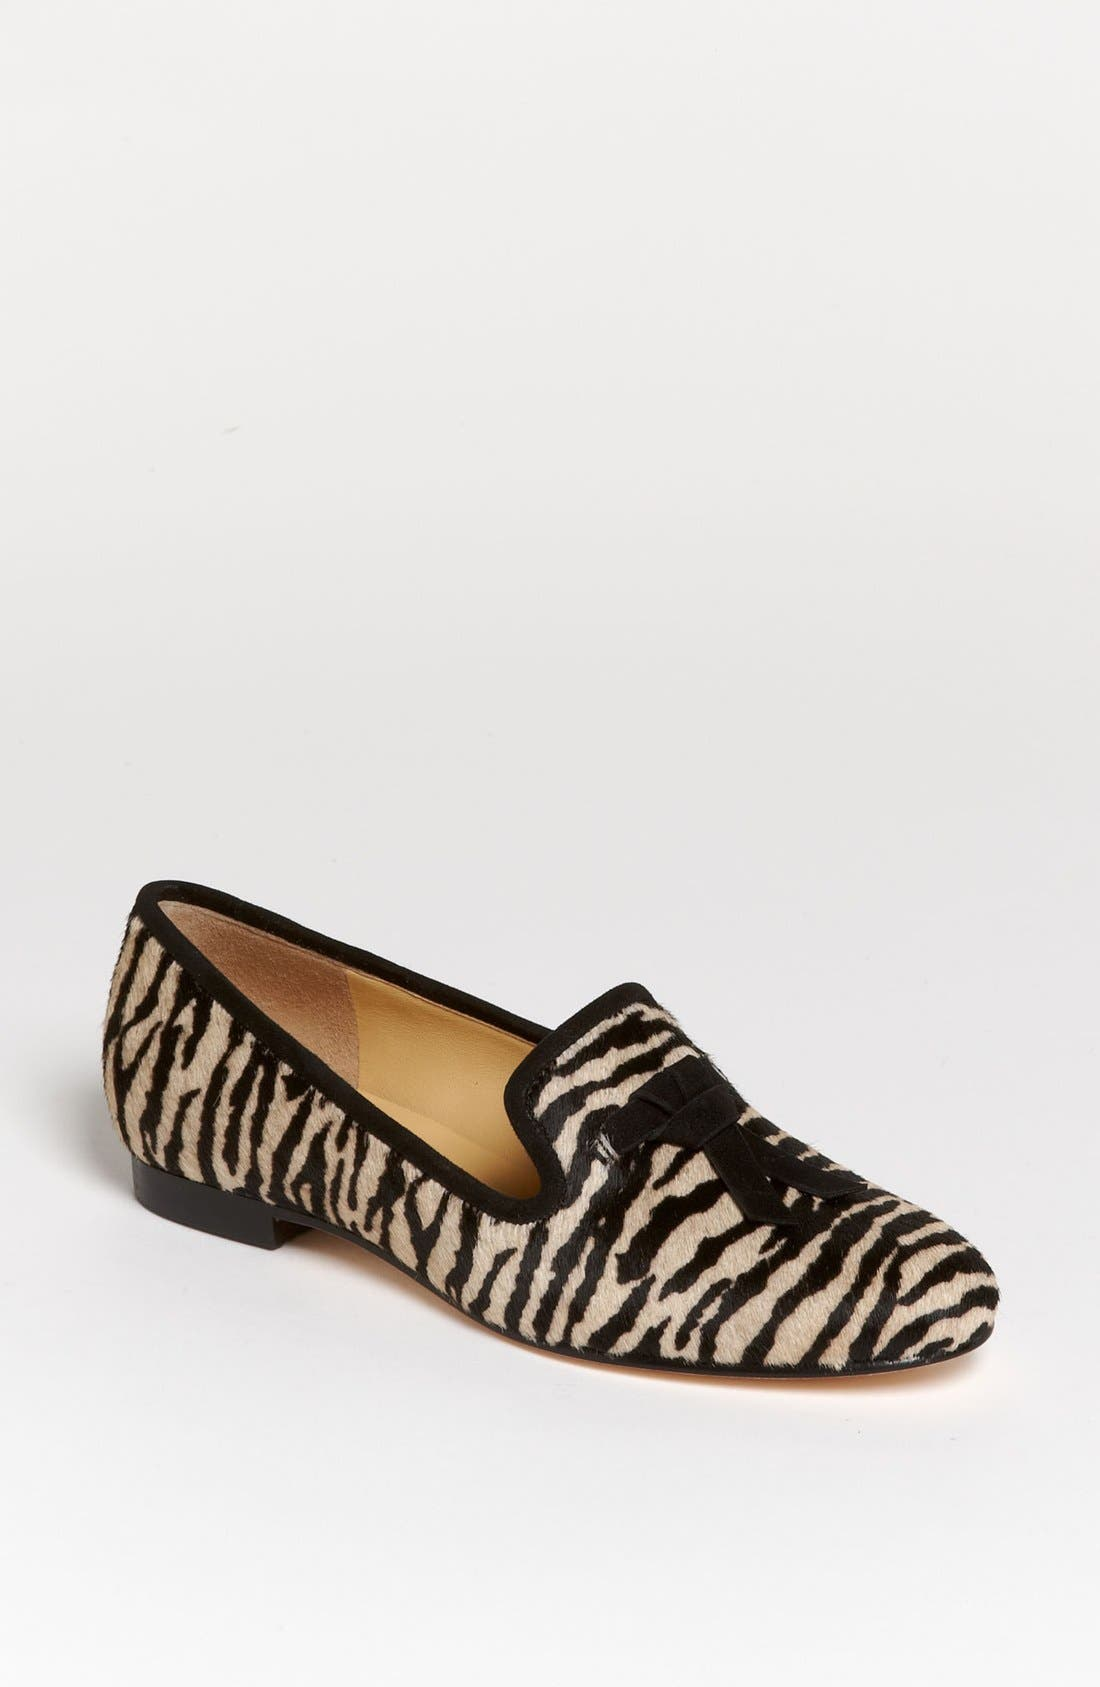 Main Image - Cole Haan 'Sabrina' Loafer (Online Only Color)